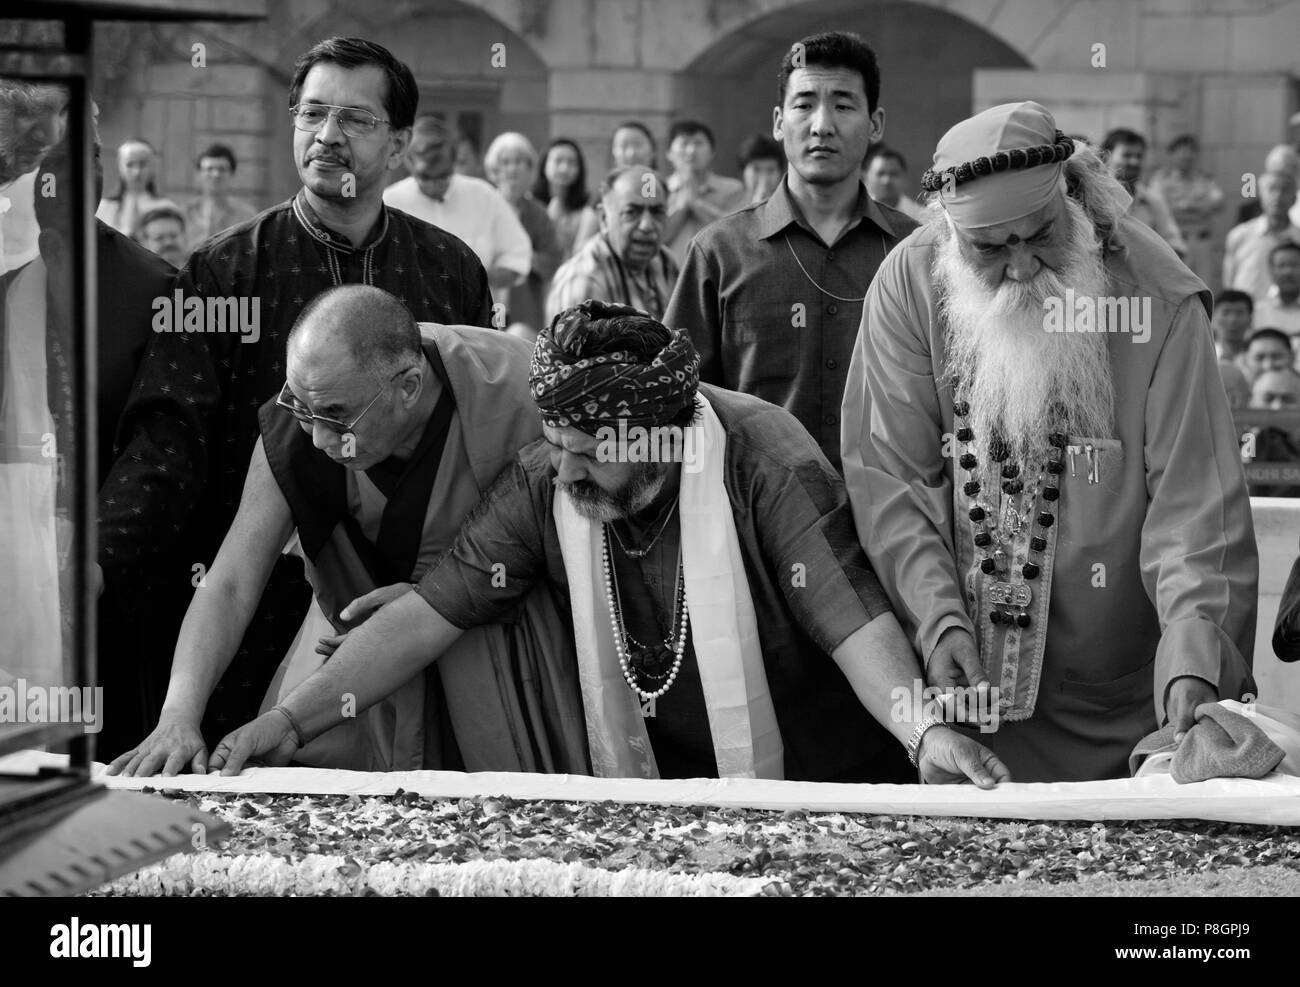 Religious leaders participate in a PRAYER FOR WORLD PEACE sponsored by the14th Dalai Lama of Tibet at the RAJ GHAT (Ghandi's eternal flame) in April o - Stock Image